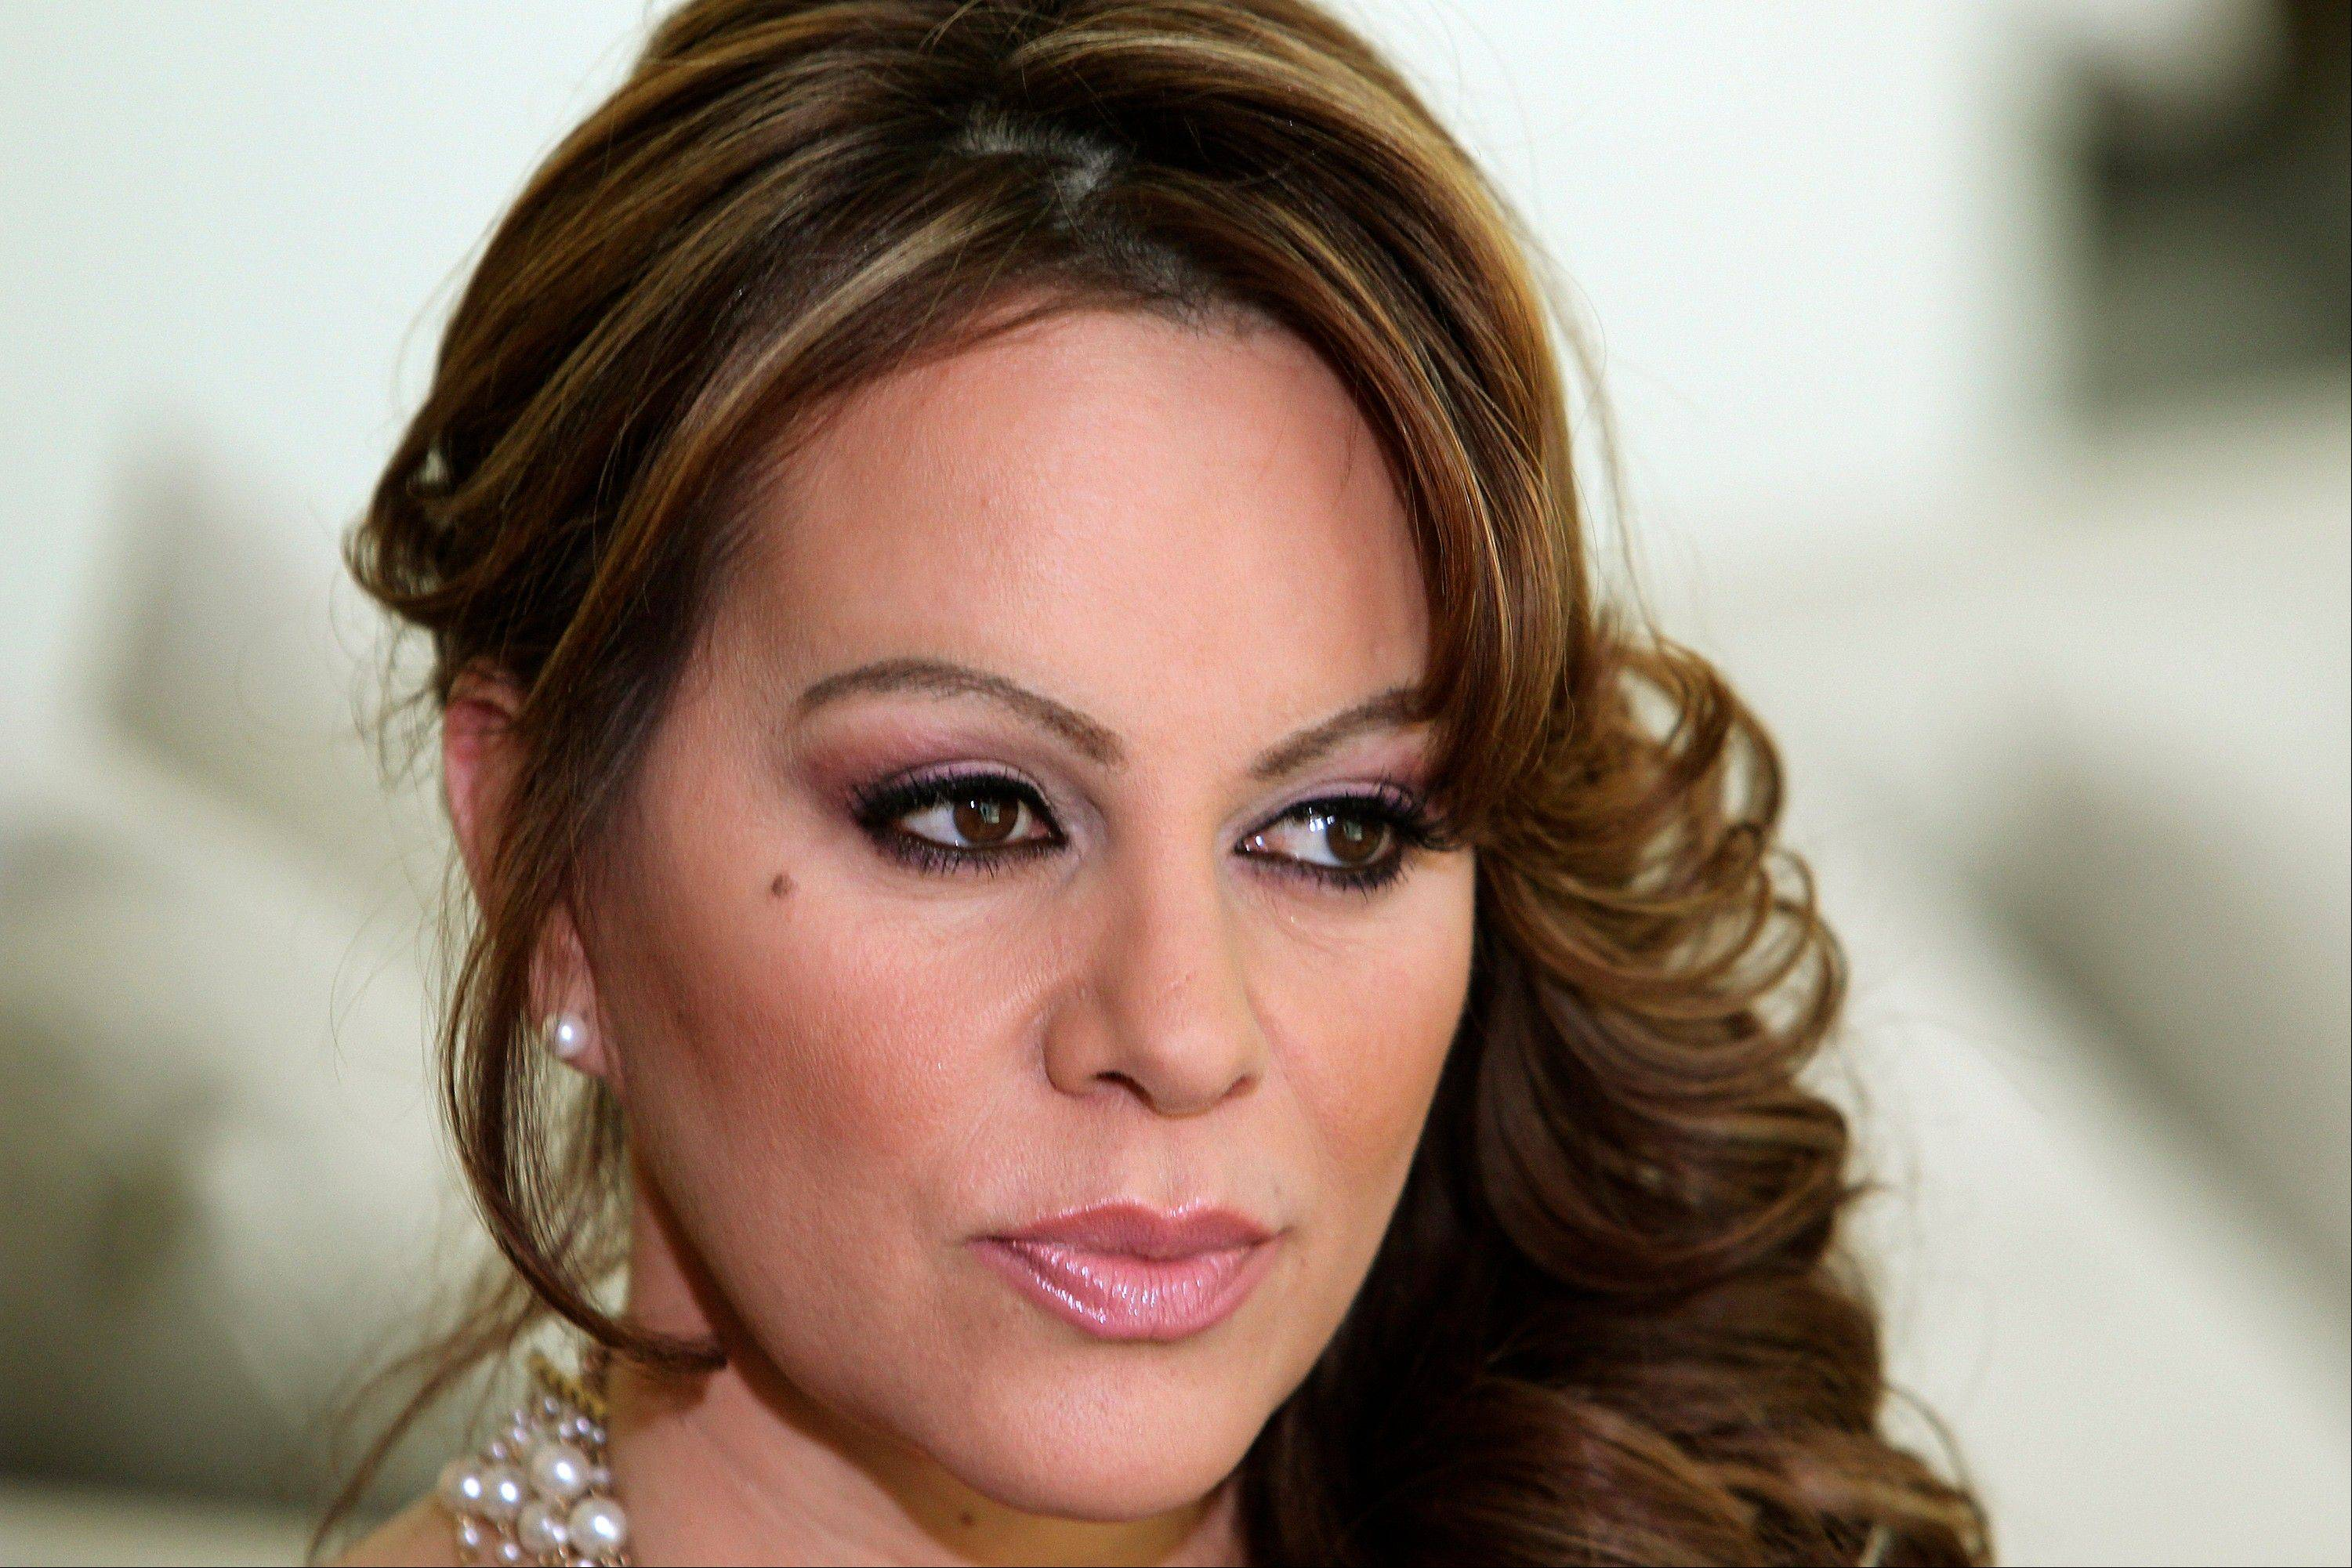 Mexican-American singer and reality TV star Jenni Rivera, who rose through personal adversity to become a superstar adored by millions in a male-dominated genre of Mexican-American music, was confirmed dead in a plane crash in northern Mexico on Monday.